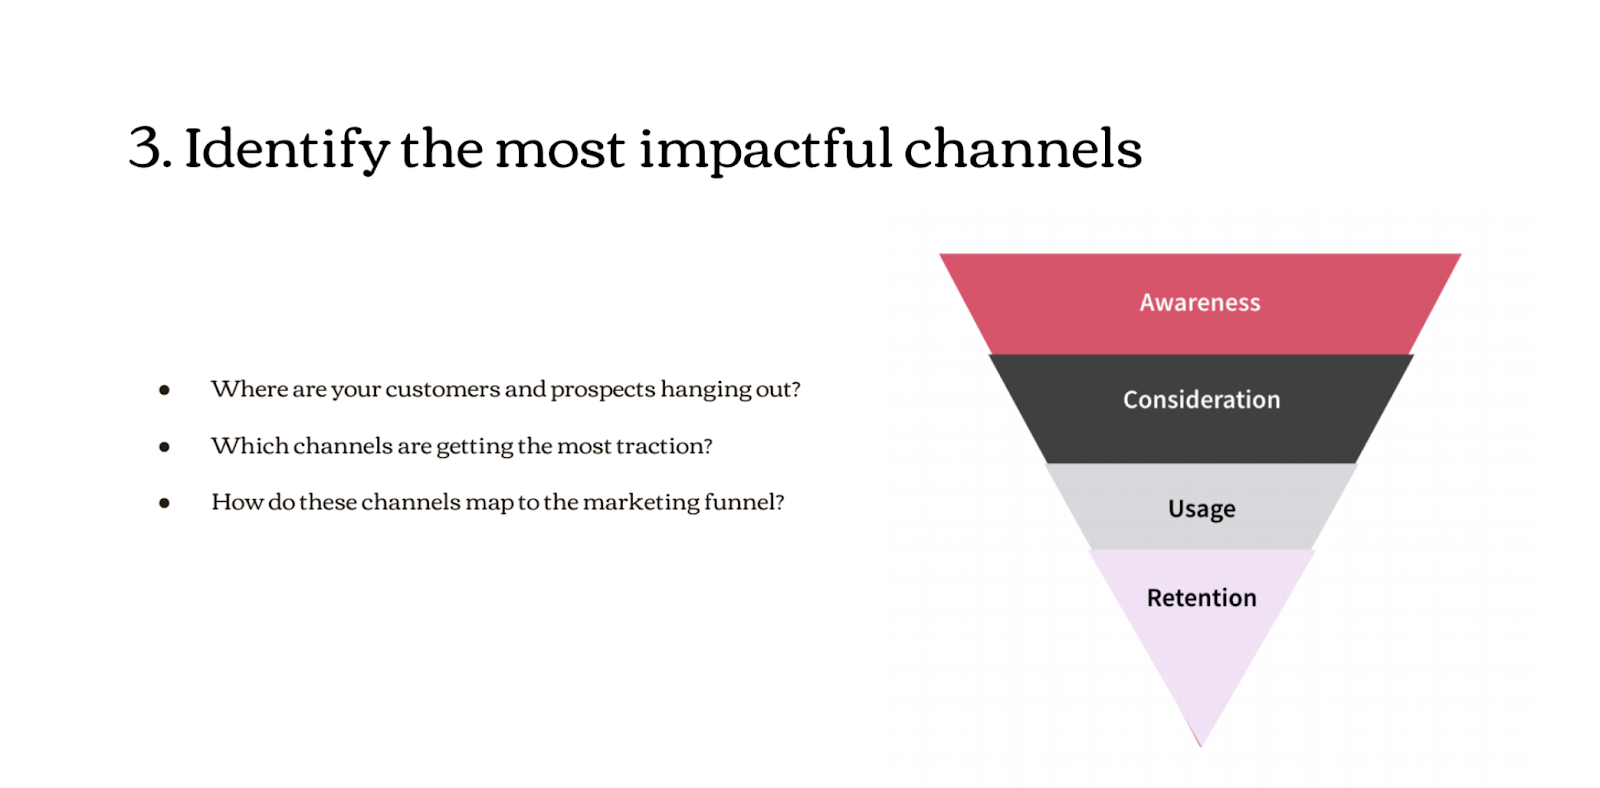 Graphic showing how to identify the most impactful channels: awareness, consideration, usage, retention